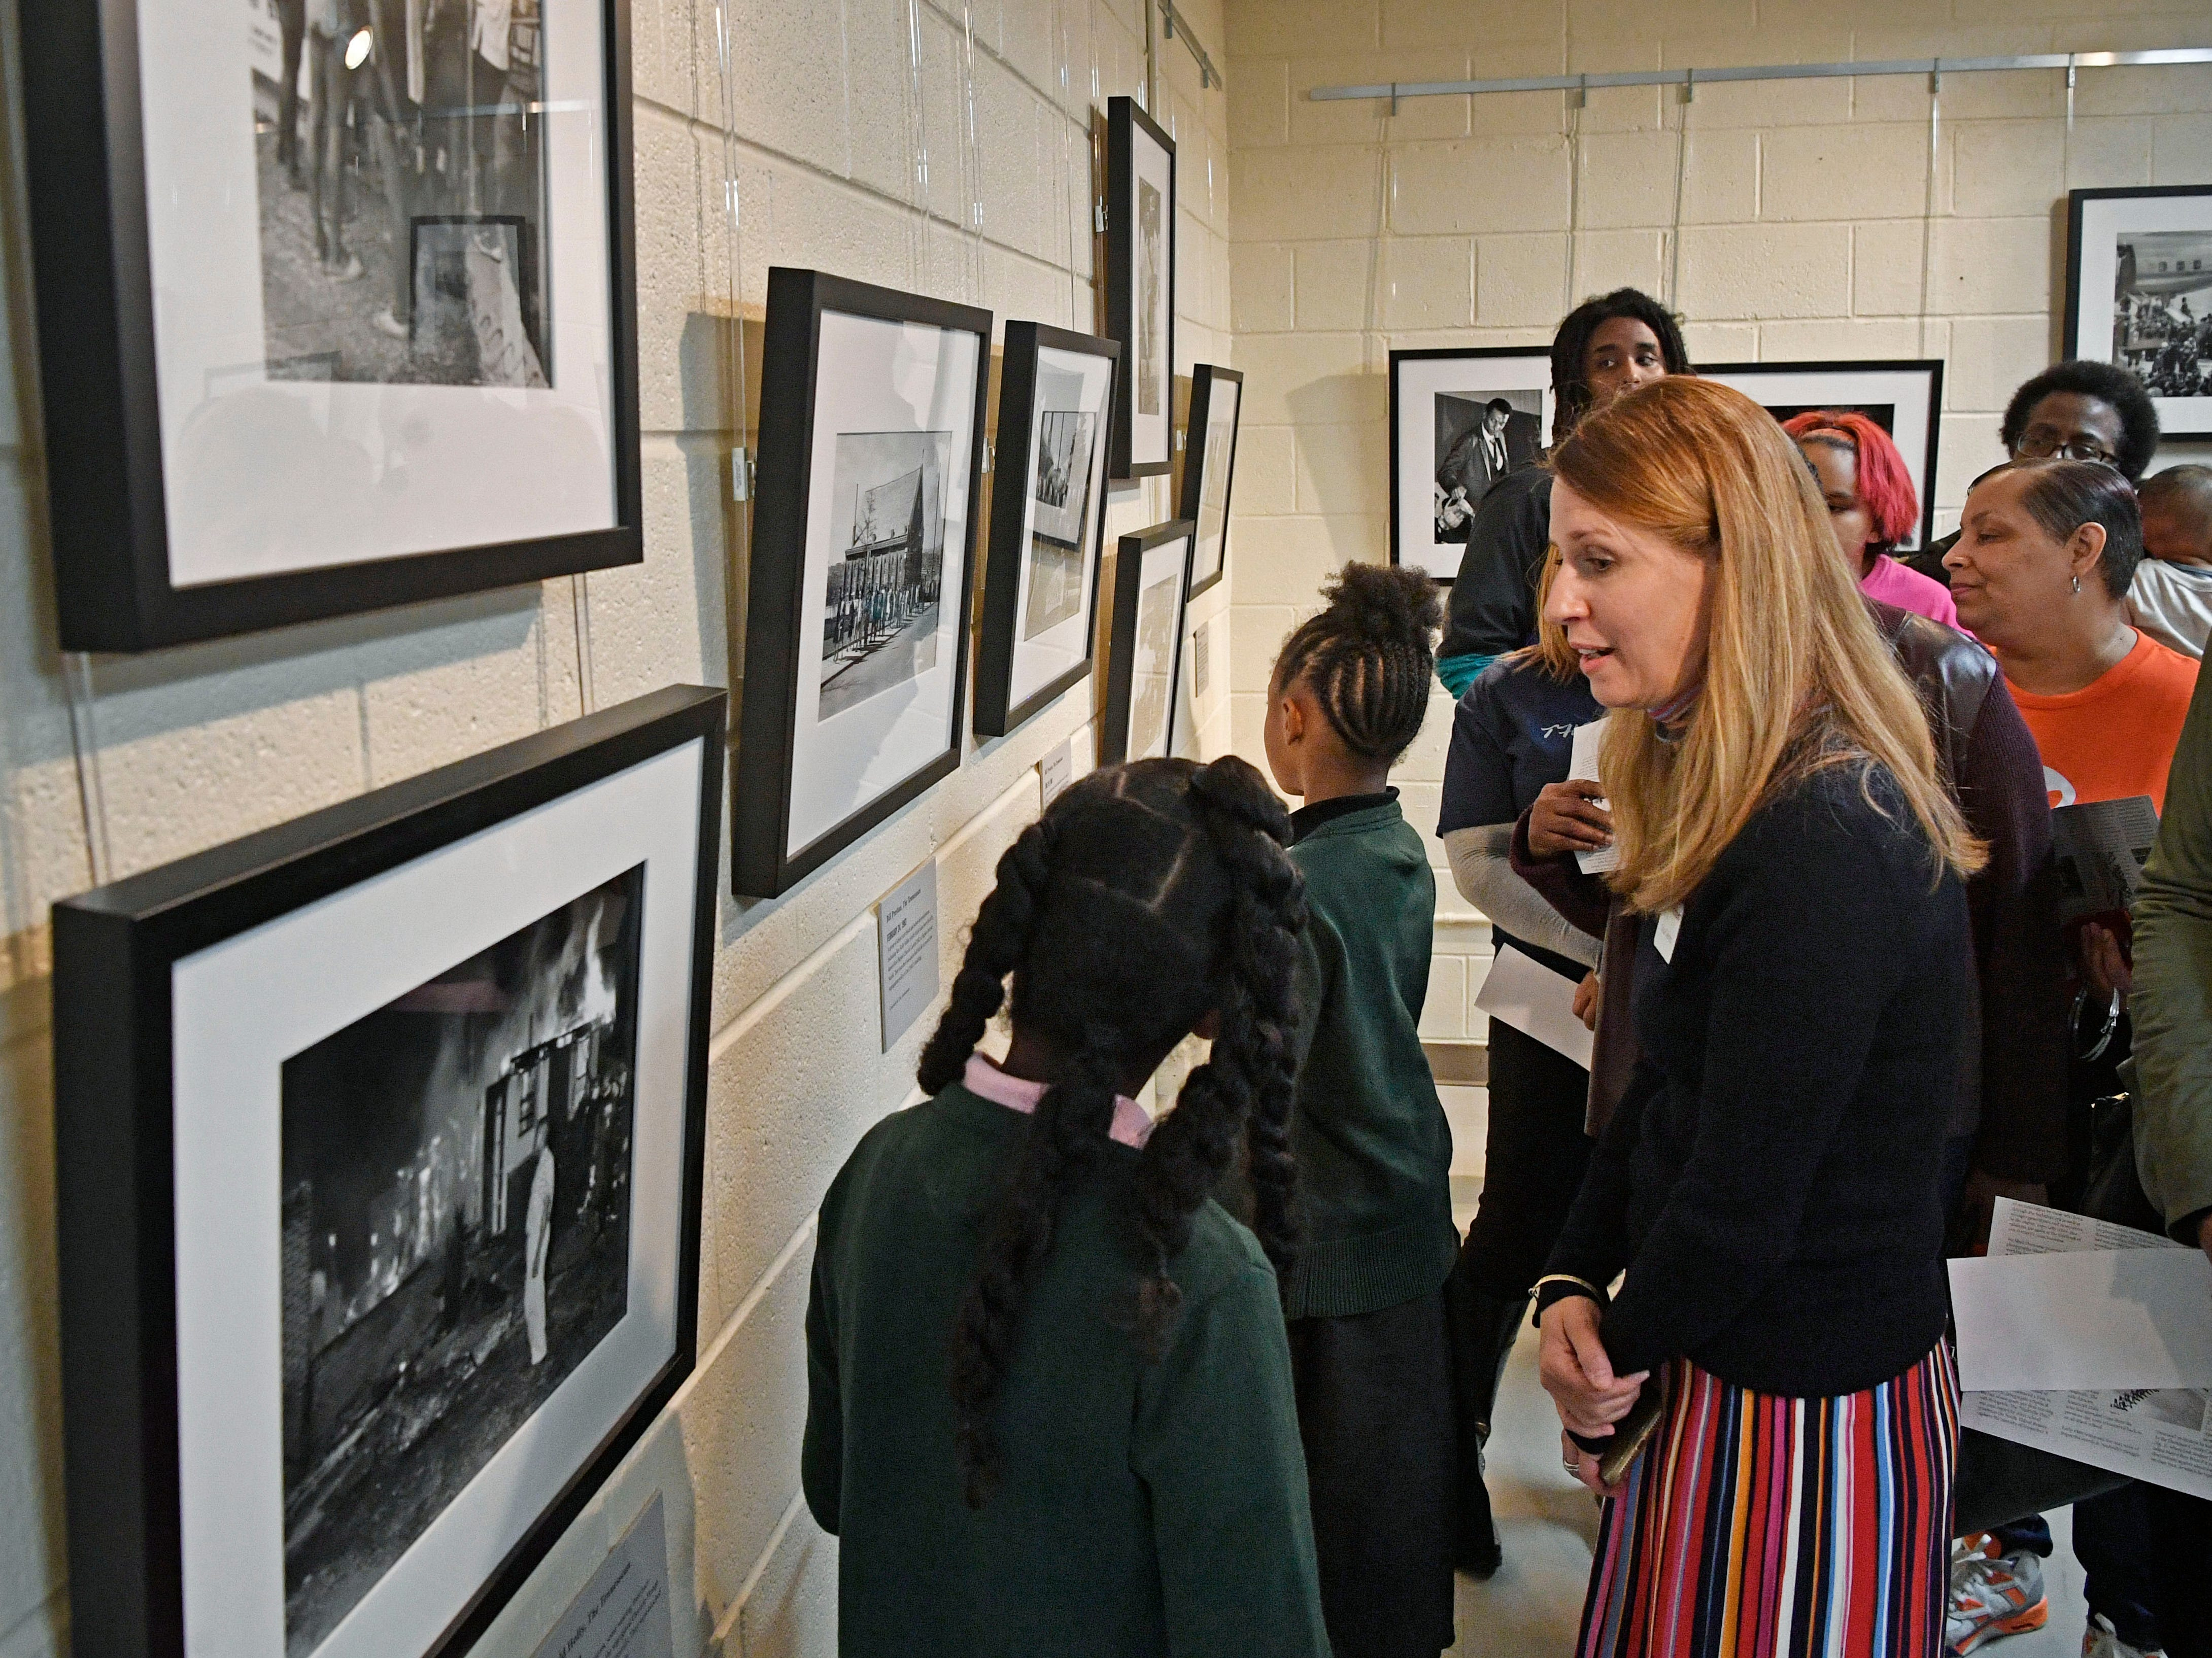 Frist curator Katie Delmez talks with students about photos that are a part of the We Shall Overcome exhibition that was presented at the Robert Churchwell Museum Magnet School. To celebrate its opening, the school hosted an assembly that featured remarks by the principal and a conversation with several participants, including Lajuanda Street Harley, Kwame Lillard, Rip Patton, and Gloria McKissack. Friday Nov. 30, 2018, in Nashville, Tenn.